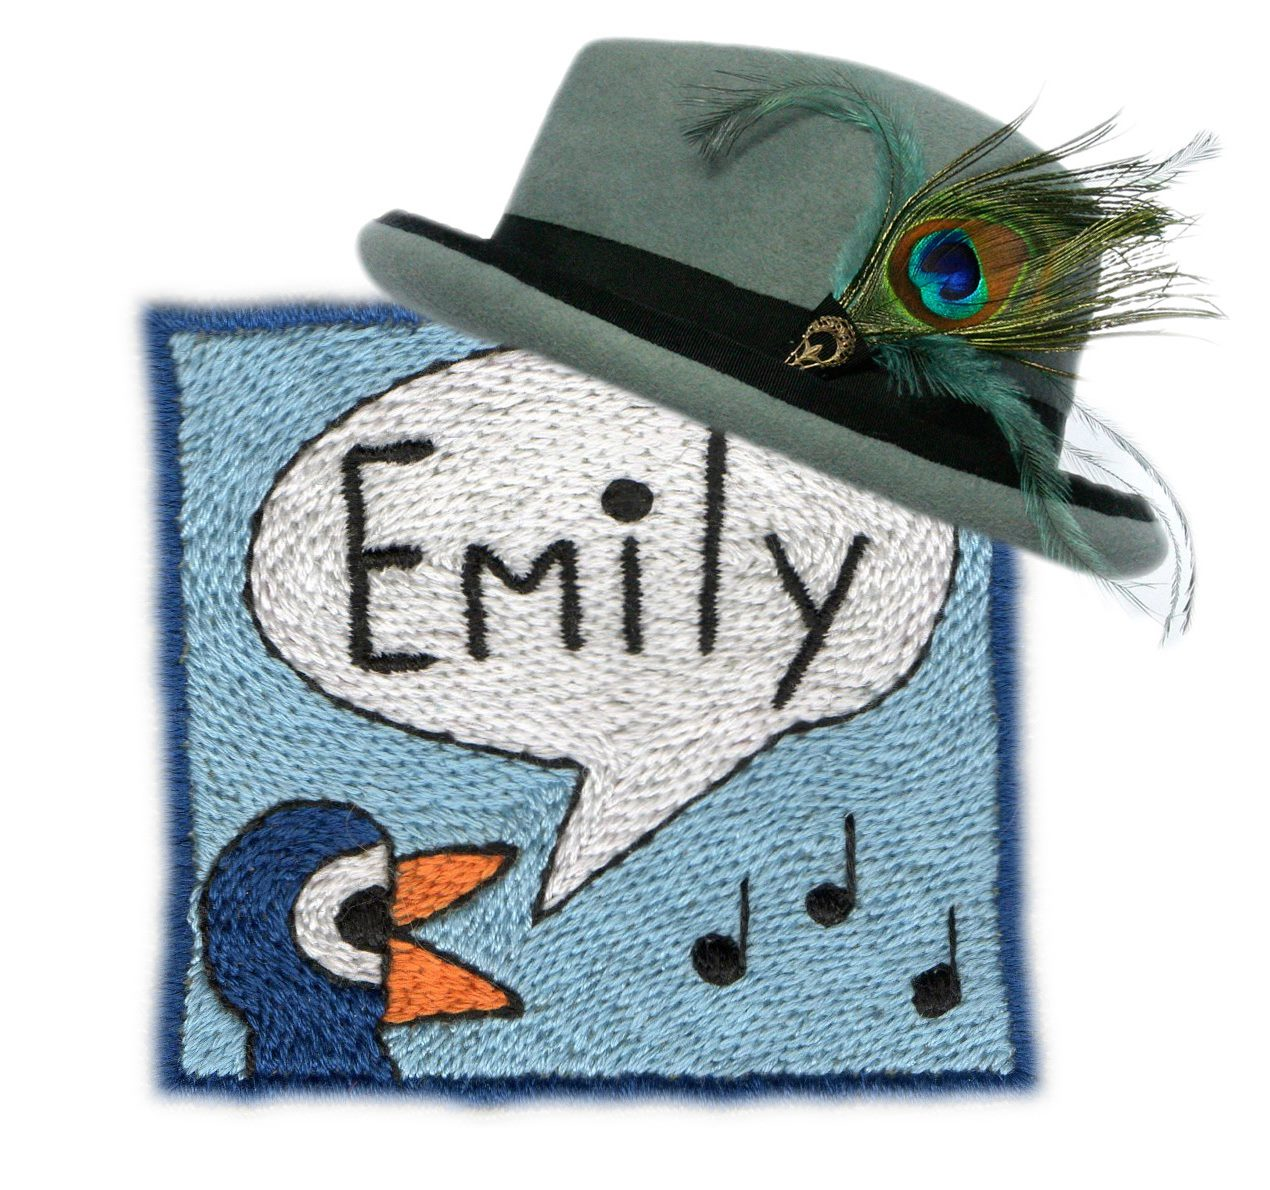 Emily Moe, Milliner and author of the Millinery Operations for Mr X Stitch